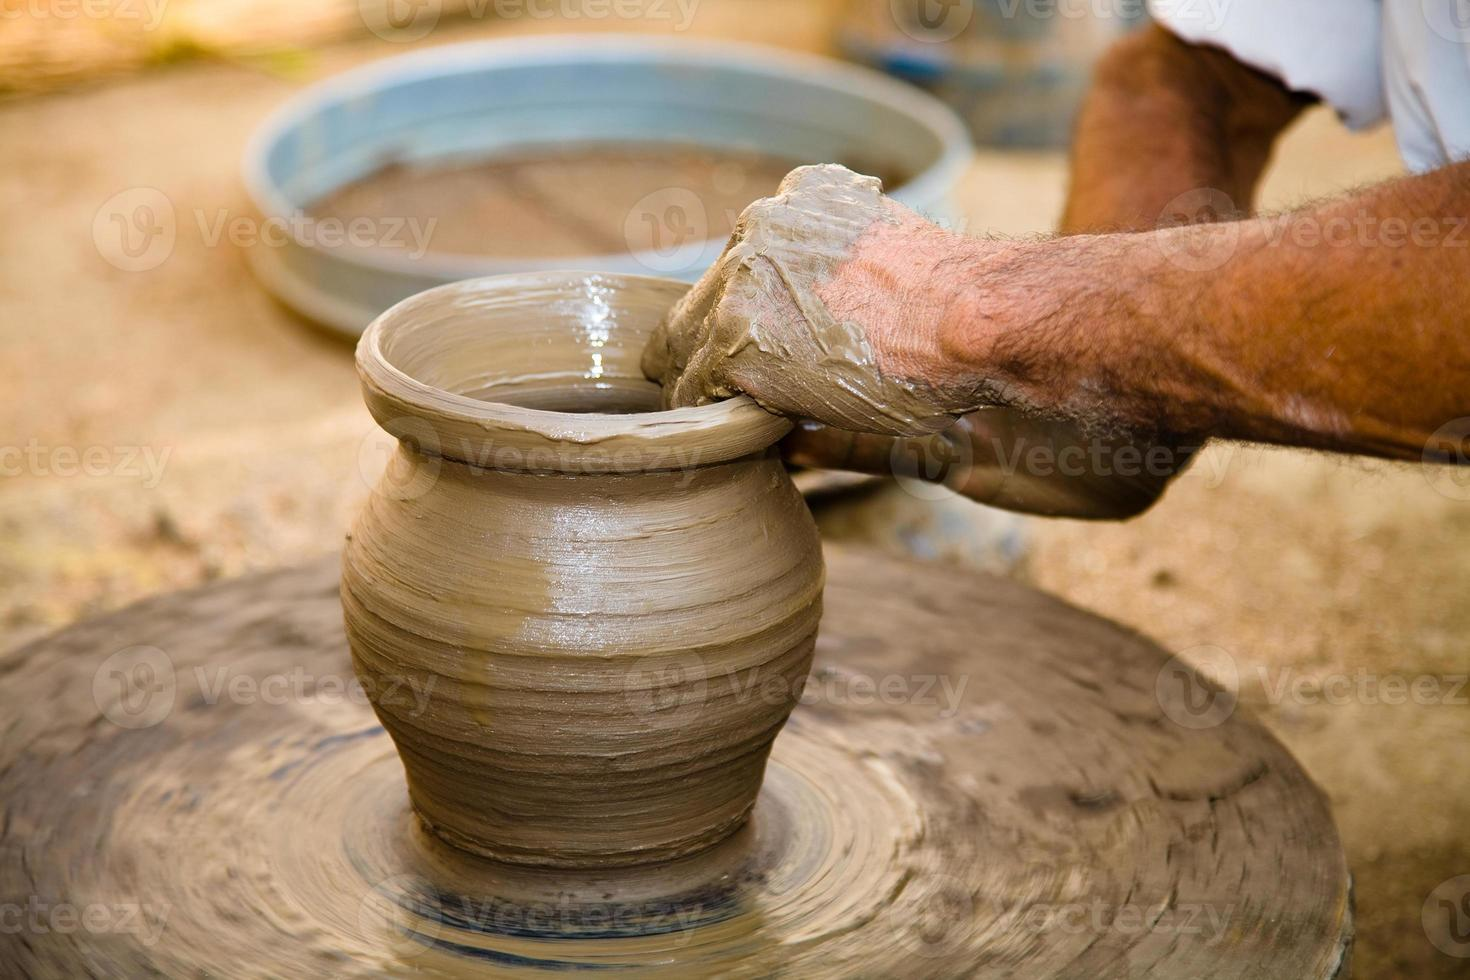 Pottery, Rajasthan, Indian photo